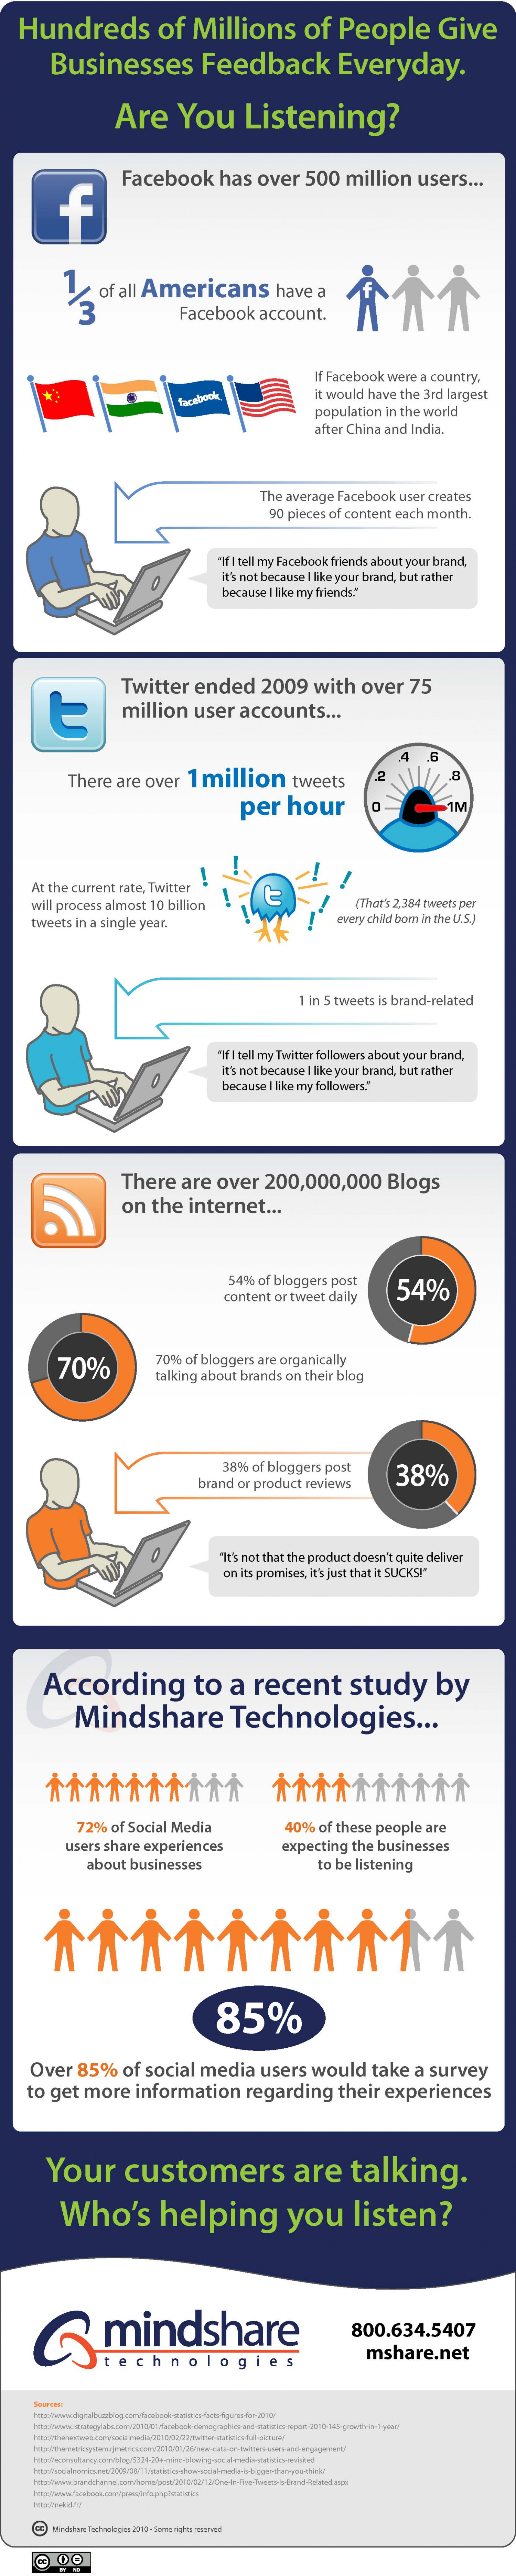 Hundreds of Millions of People Give Businesses Feedback Every Day. Are You Listening? Infographic